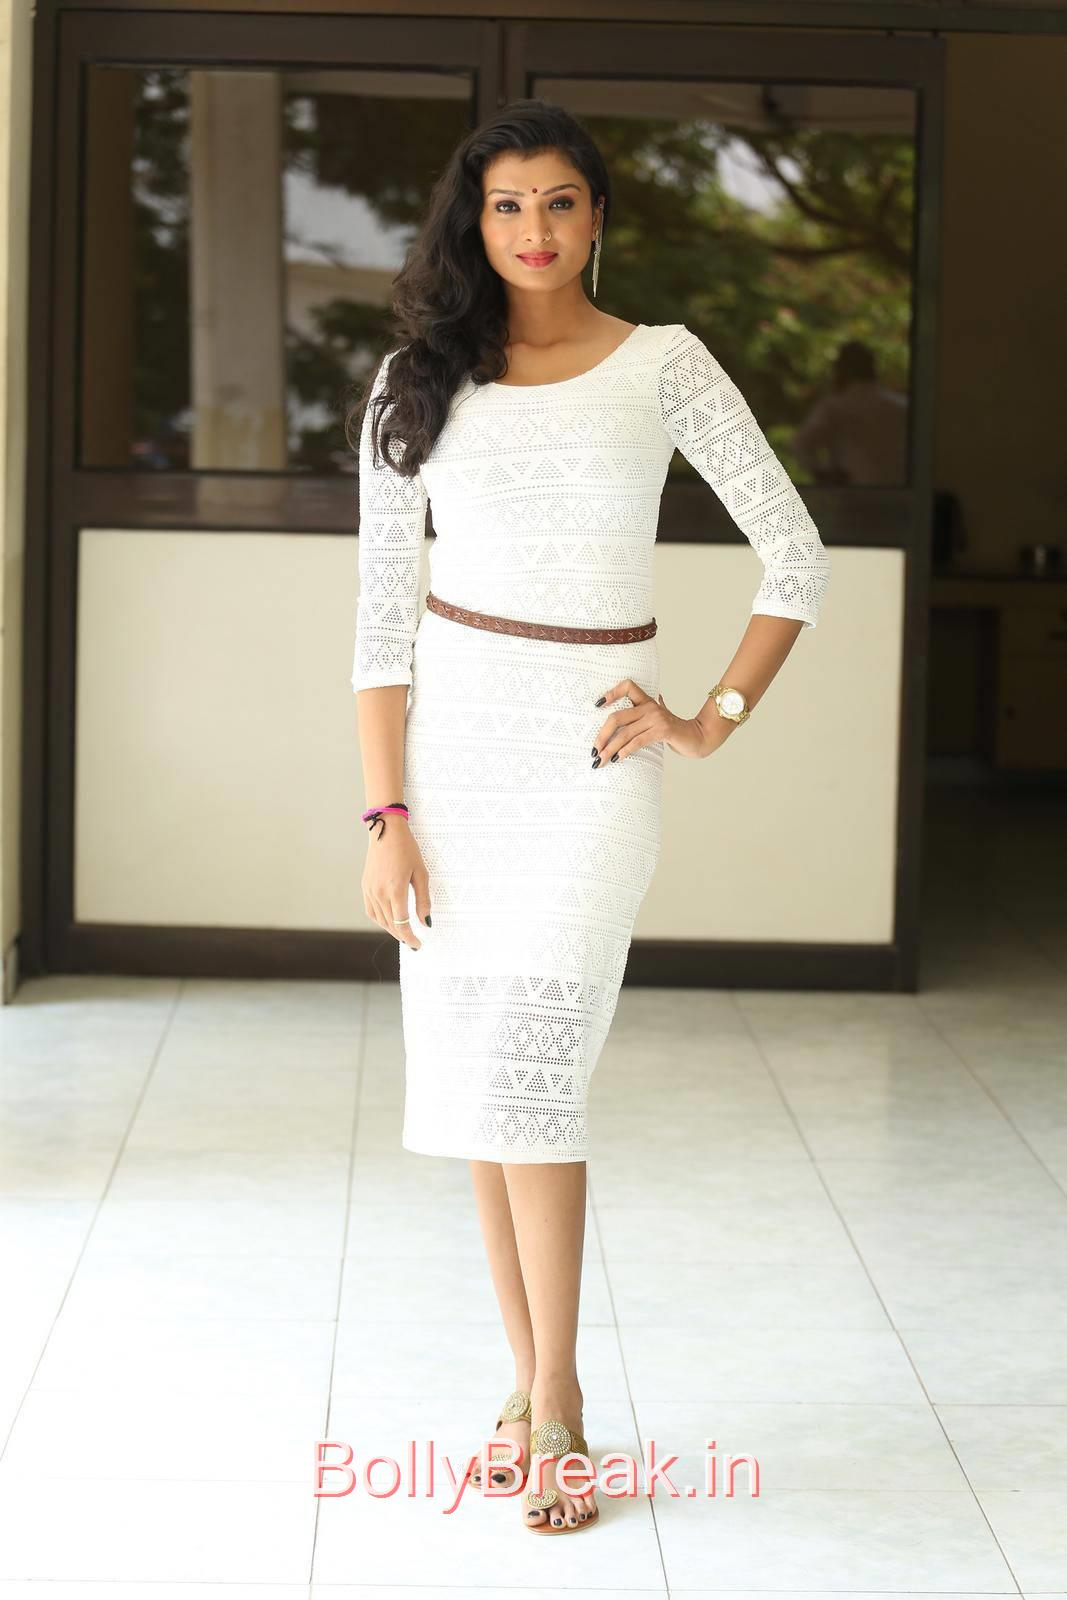 Ishita Photo Gallery, Actress Ishita Standing Full Size HD Hot Pics in White Dress